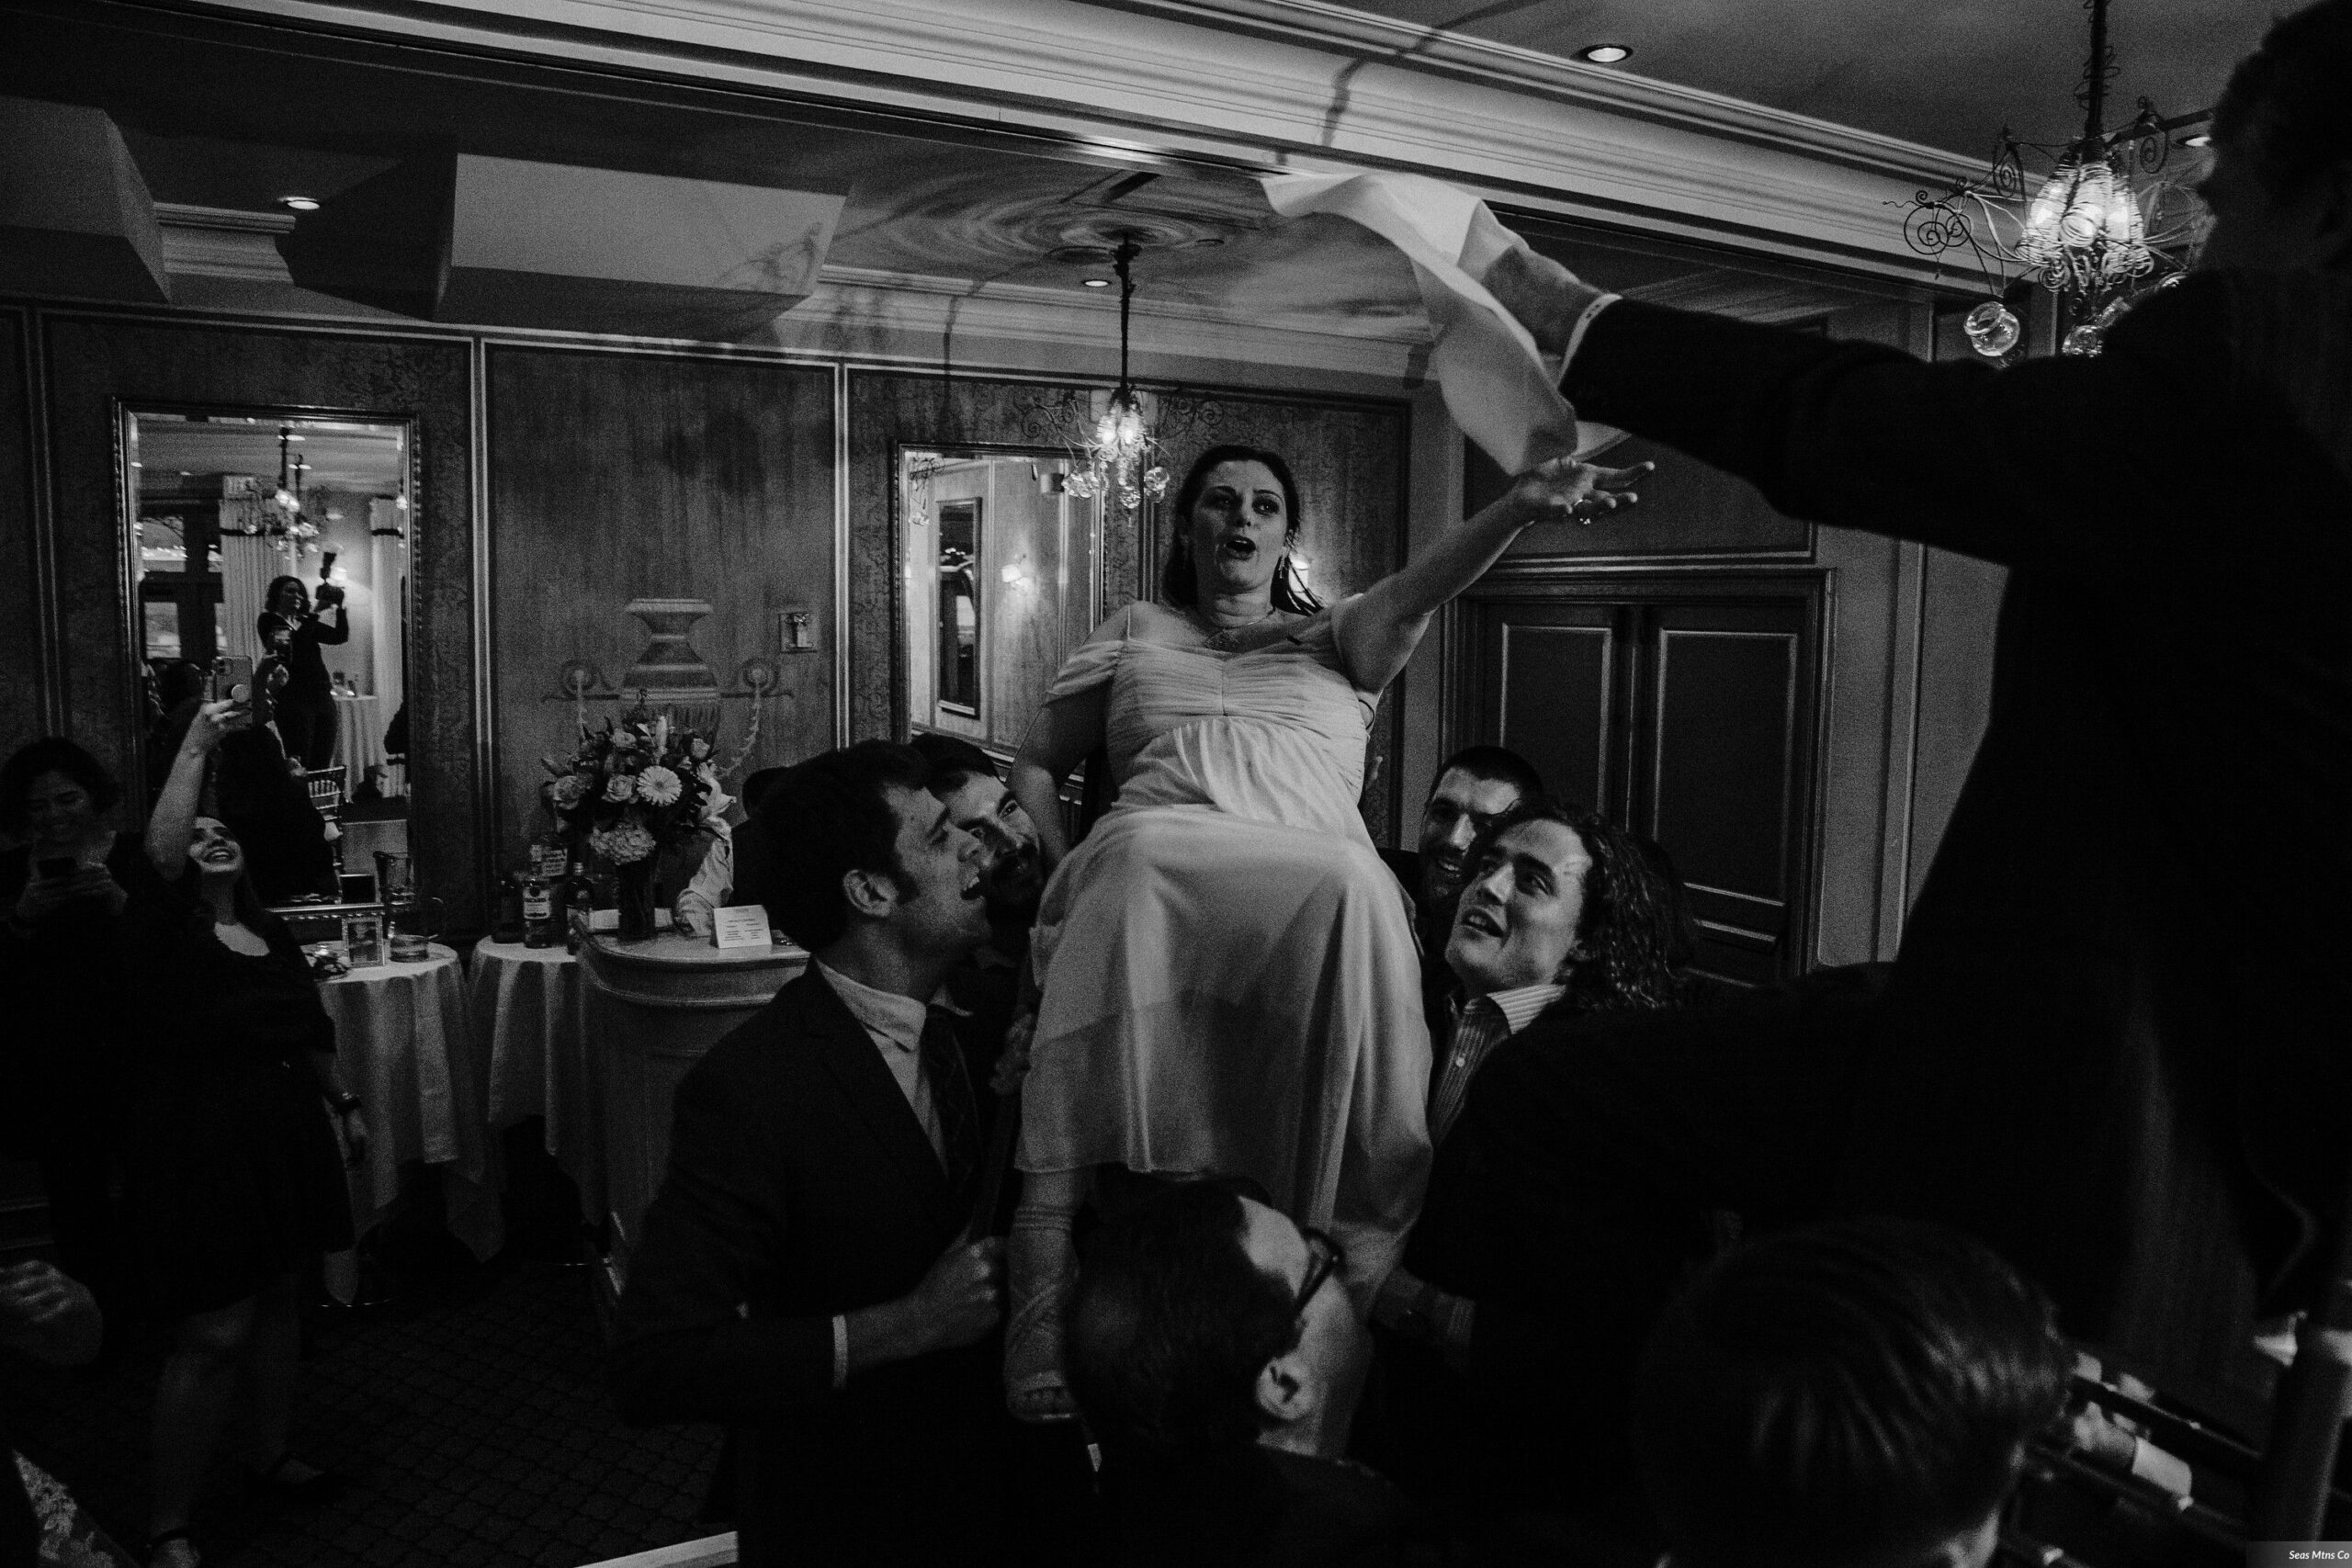 Bride and Groom held up on chairs during hora on dancefloor at Lescale wedding in Greenwich CT